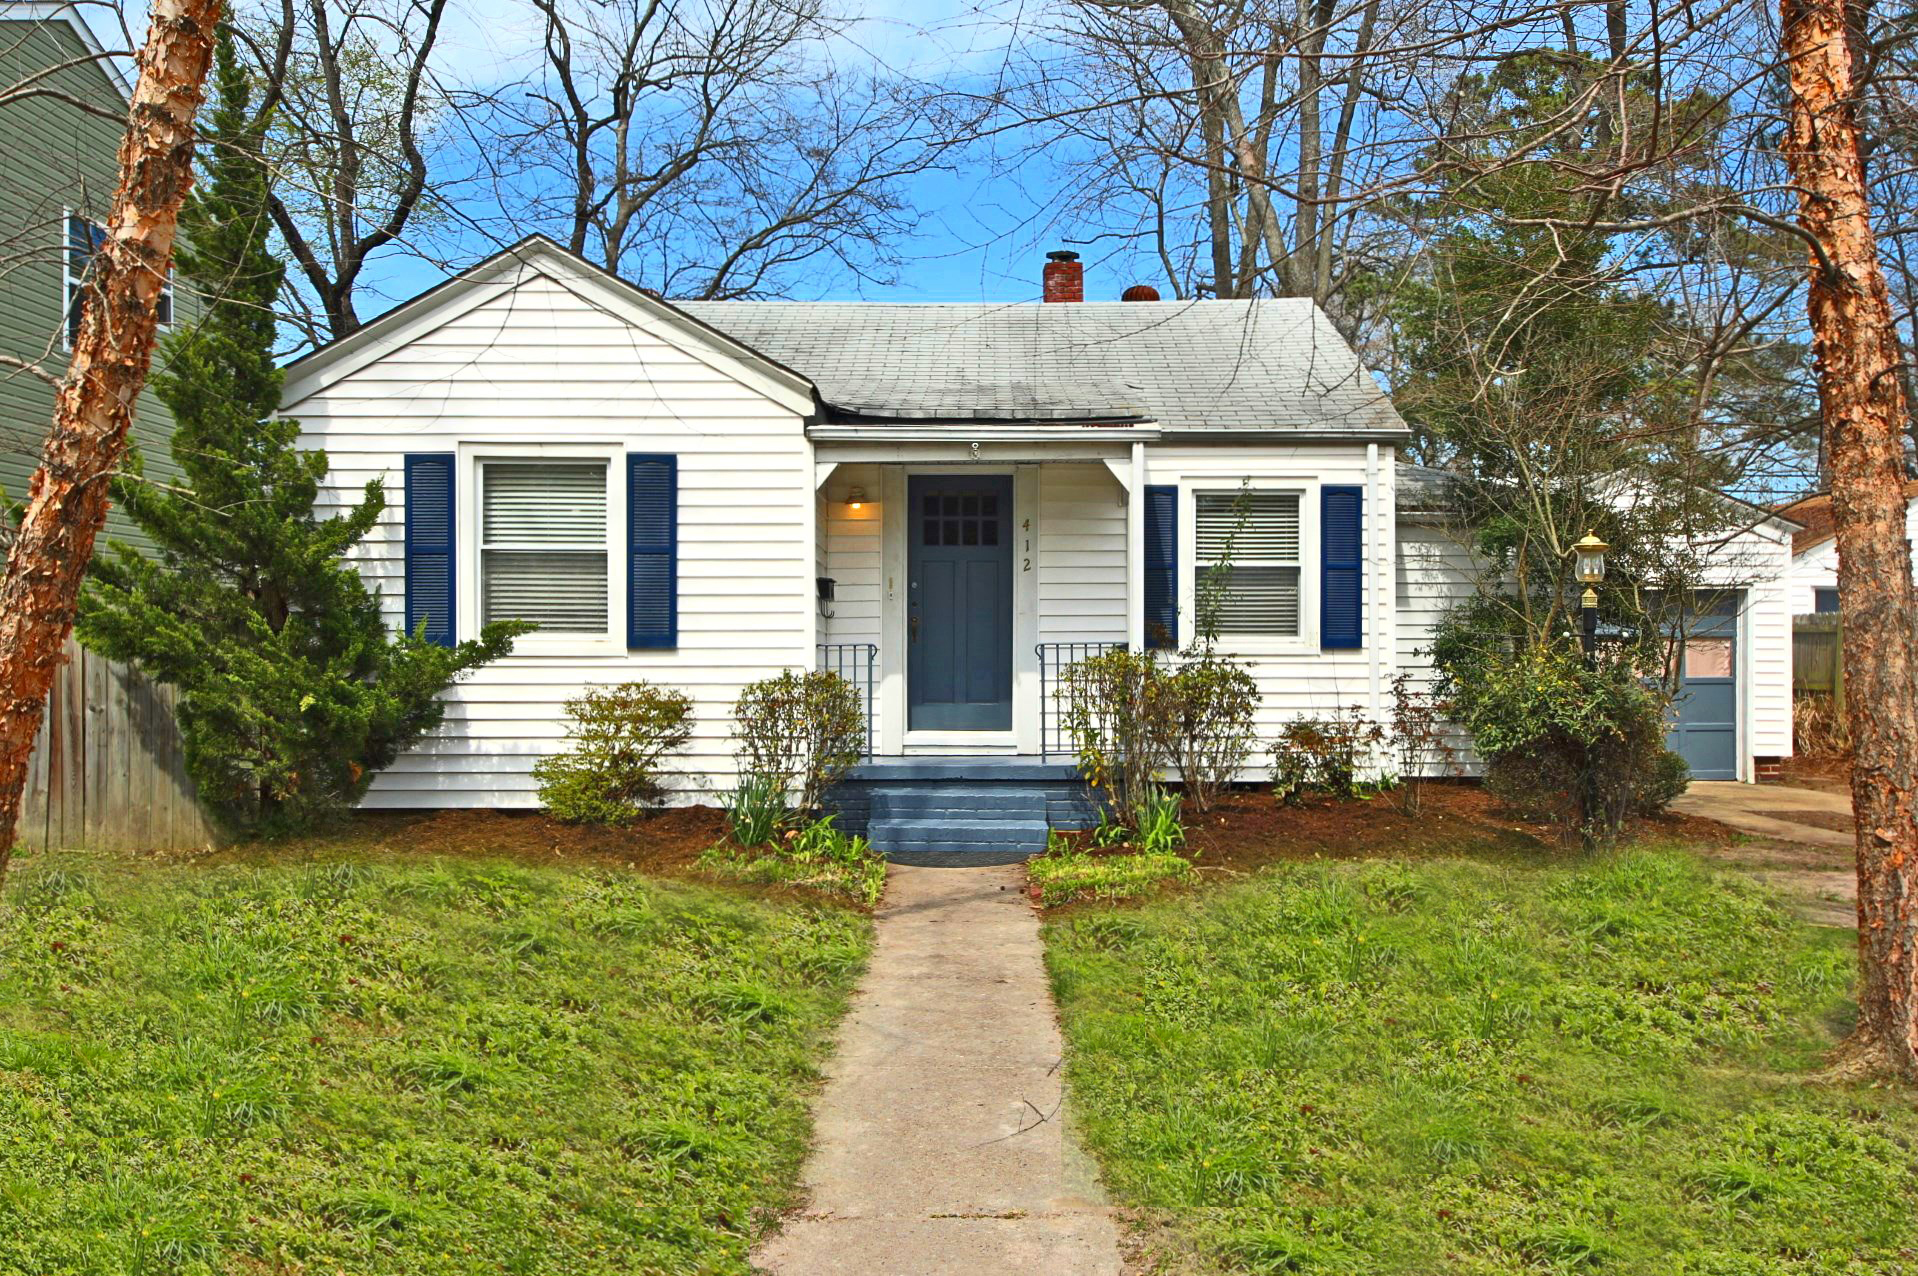 412 Maycox Avenue: Sold!